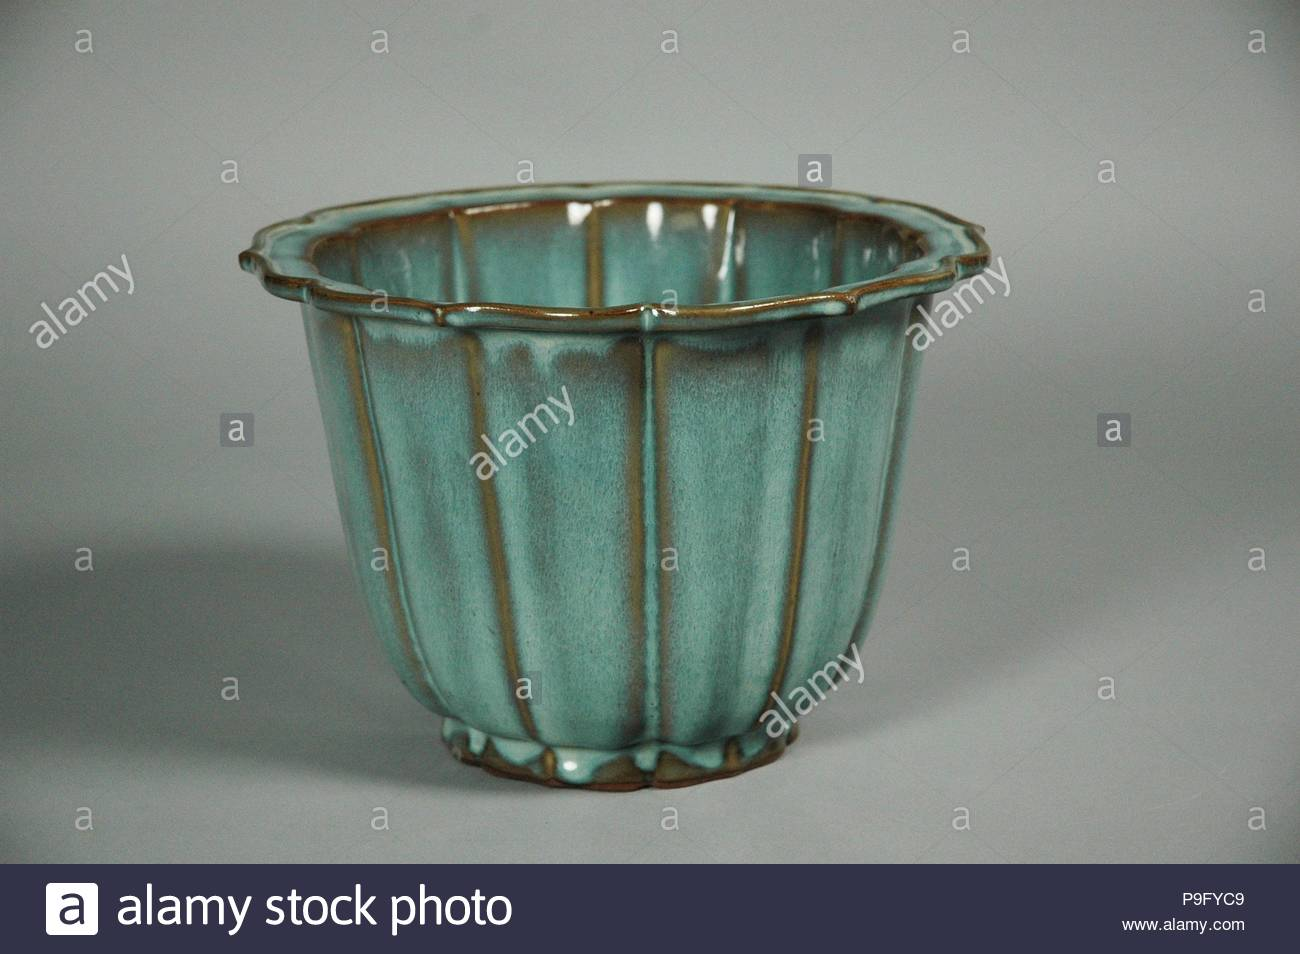 Flowerpot, Yuan (1271–1368)–Ming (1368–1644) dynasty, 14th–15th century, China, Stoneware with splashed glaze (Jun ware), H. 6 5/8 in. (16.8 cm); Diam. 9 1/2 in. (24.1 cm), Ceramics, Although no longer used at the court, Jun ware continued to be produced in the fourteenth and early fifteenth century. Most of the vessels made at this time were intended to hold flowers or bulbs, and many have numbers incised into their bases, possibly indications of size. - Stock Image